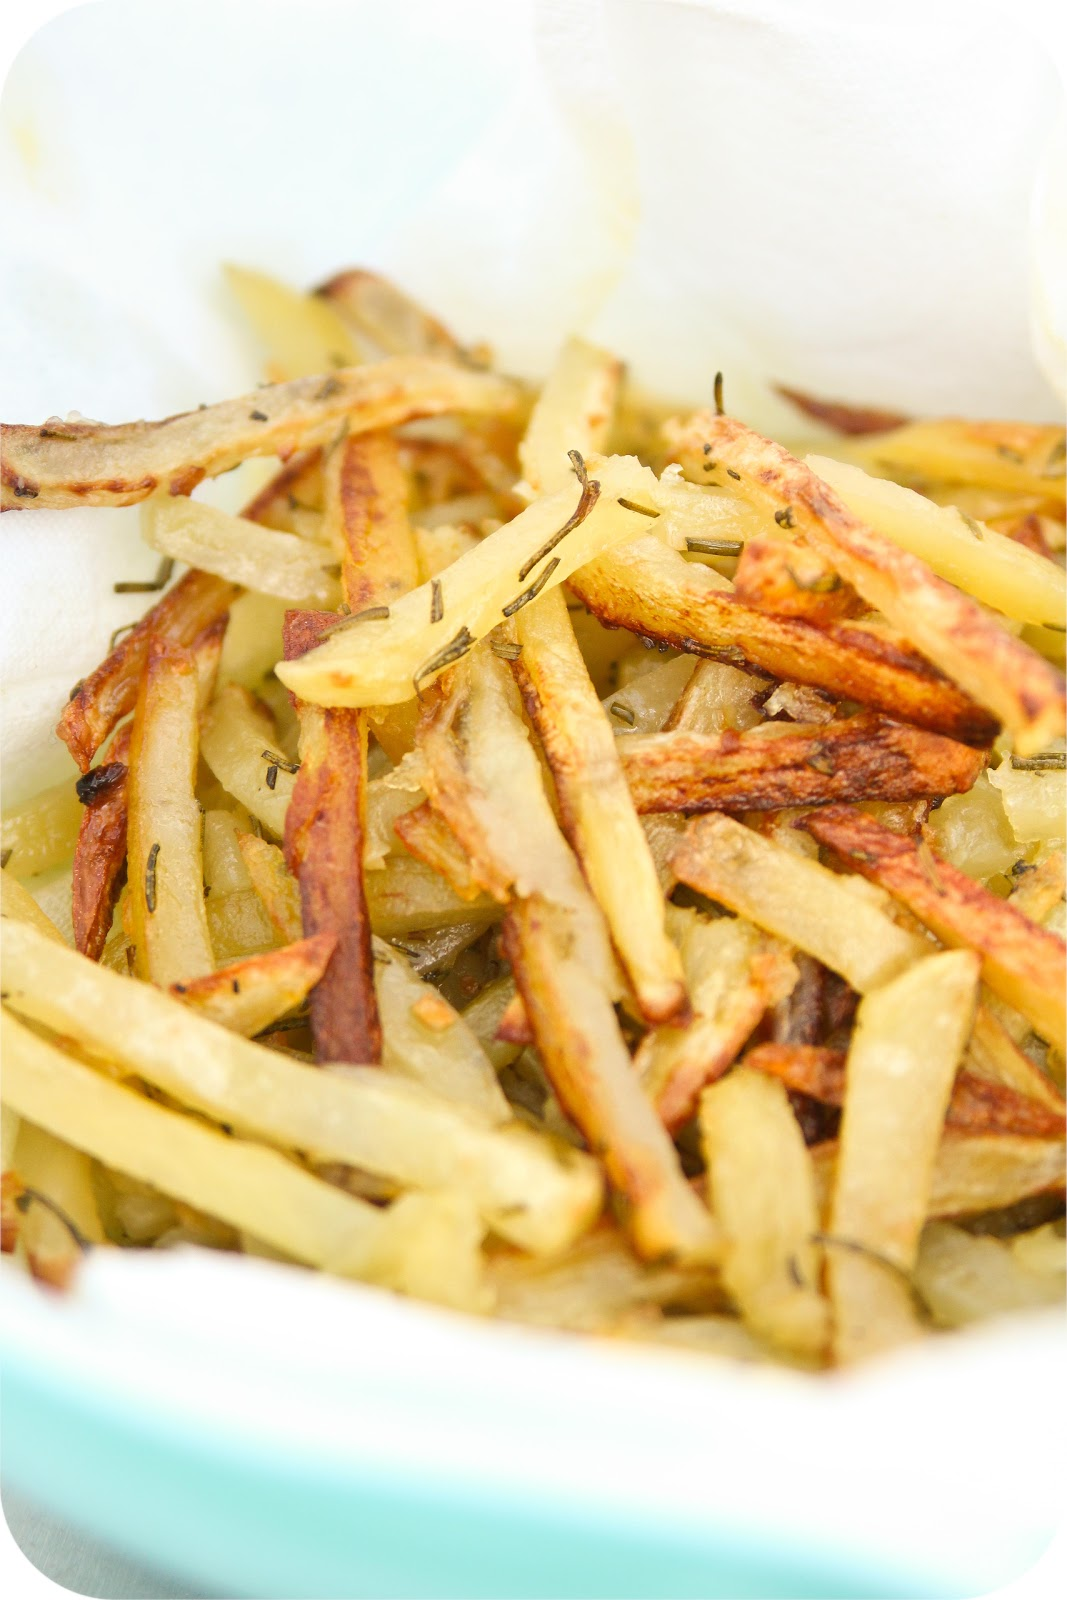 Garlic Rosemary French Fries